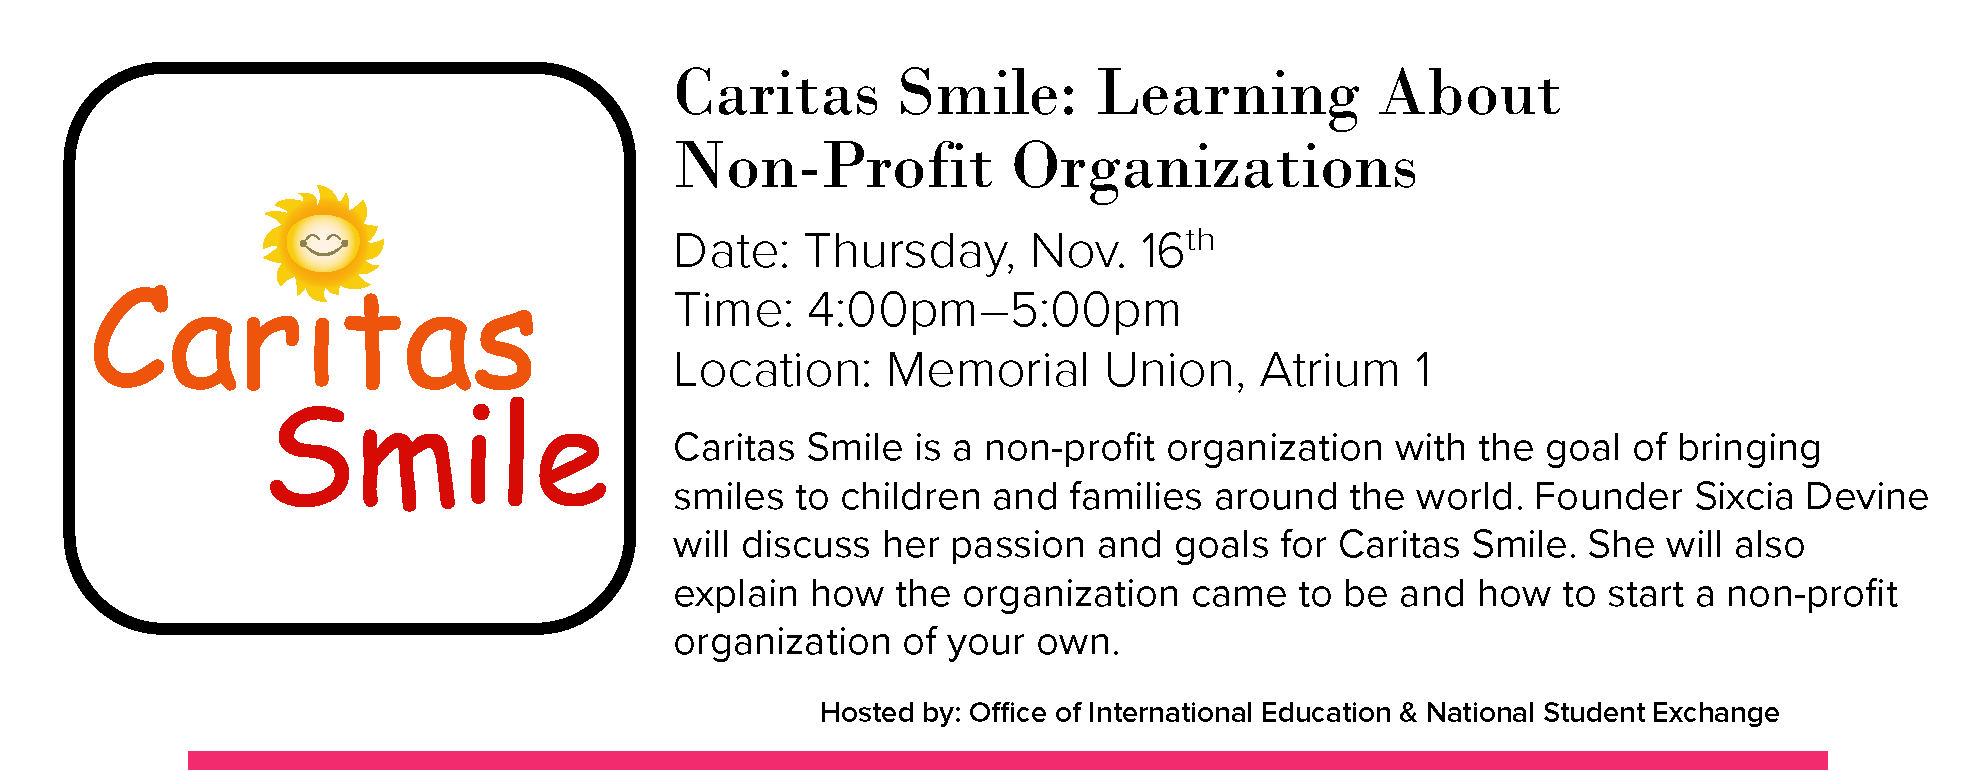 Caritas Smile Learning about Non-Profit Organizations